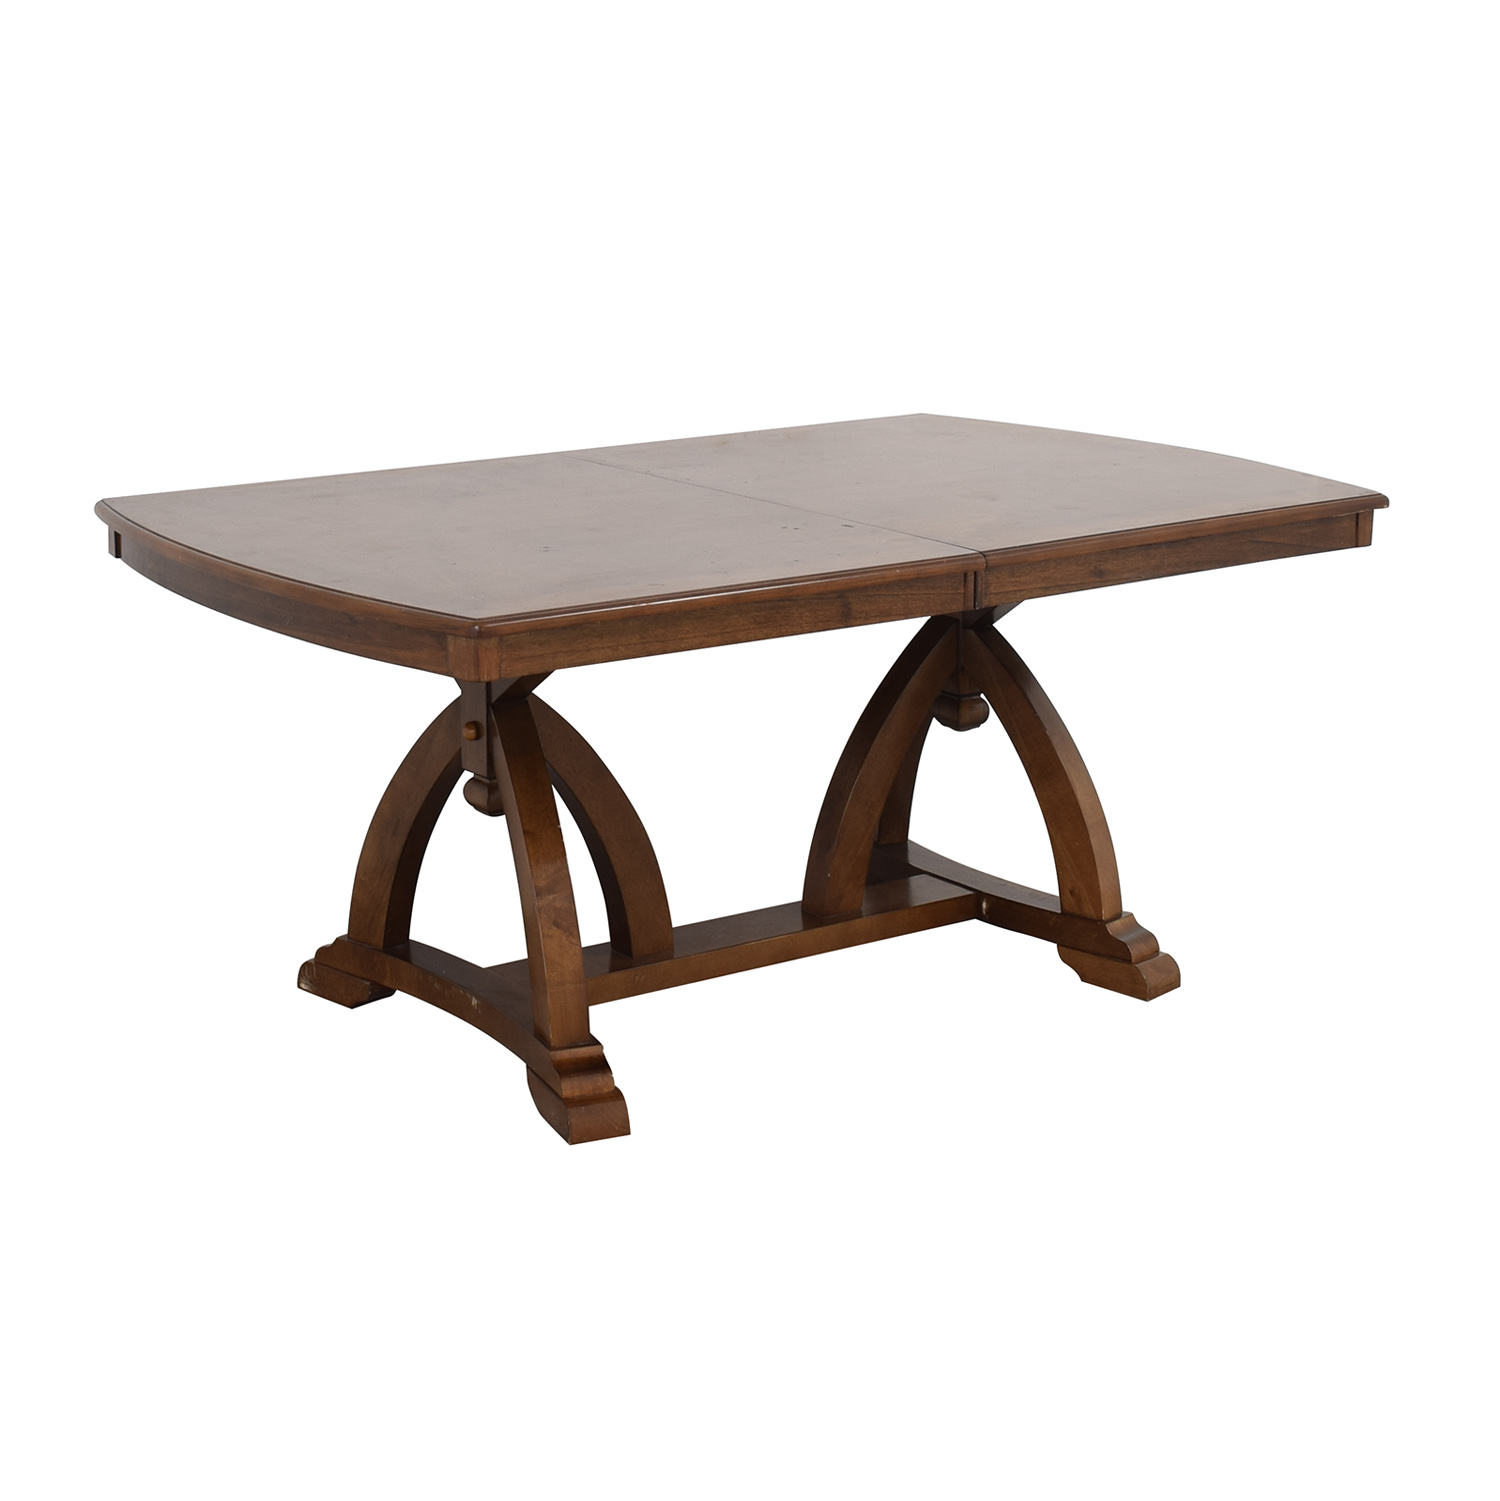 Raymour & Flanigan Raymour & Flanigan Wood Expandable Dining Table Tables